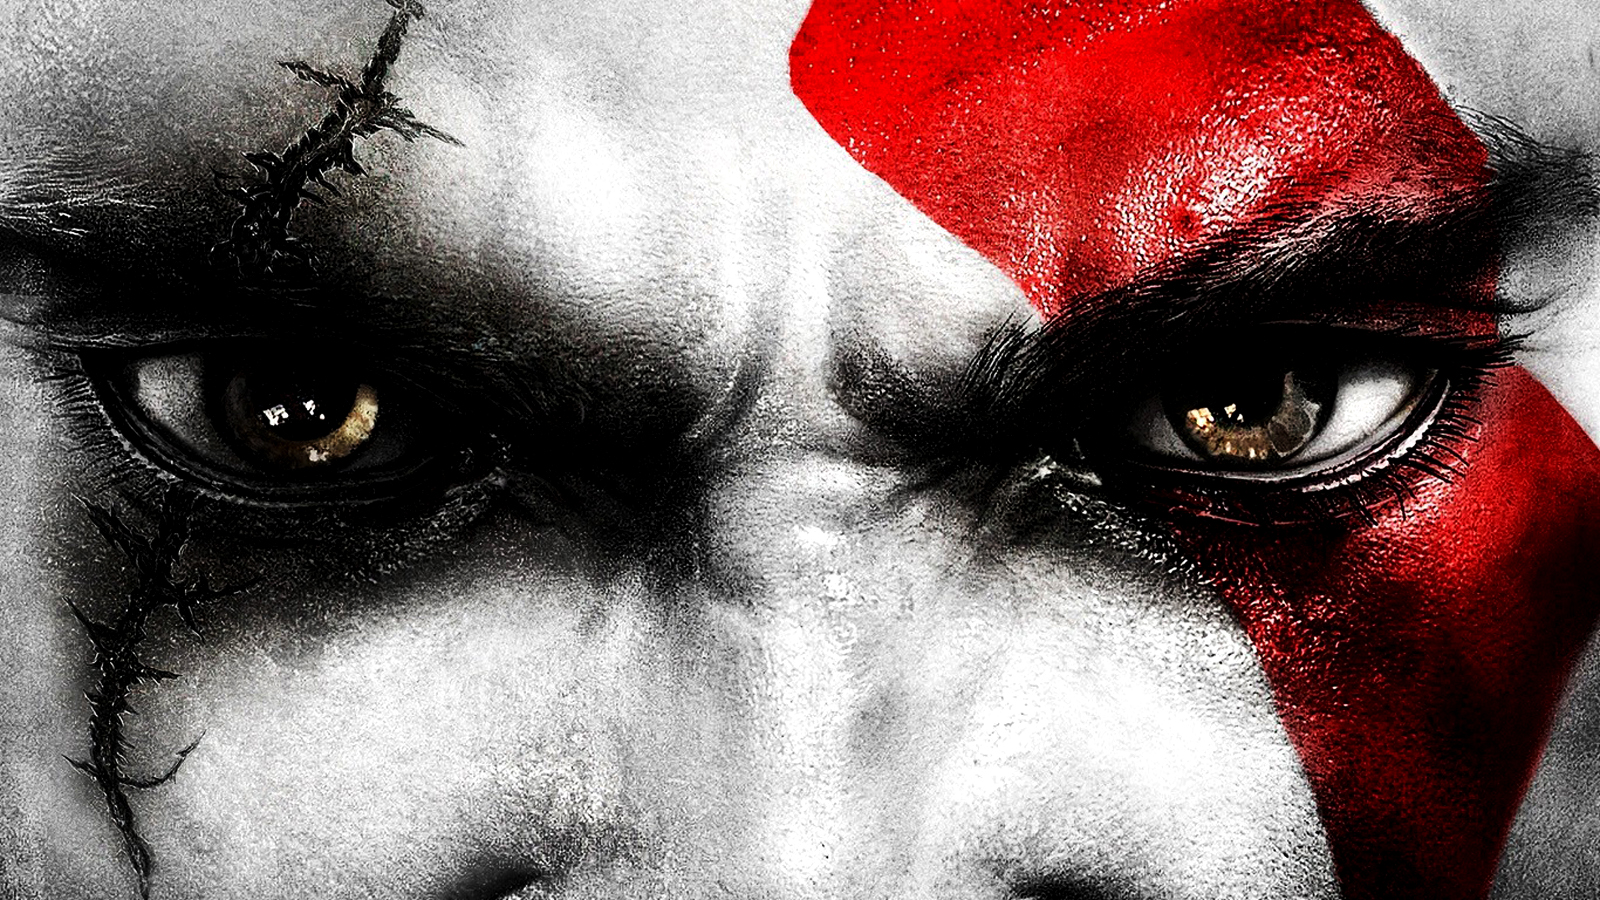 http://3.bp.blogspot.com/-_3RRDkAvSzk/T27s85EgyRI/AAAAAAAAA_E/4-ks5wmm0tY/s1600/God_of_War_Kratos_Eyes_HD_Game_Wallpaper-gWb.jpg